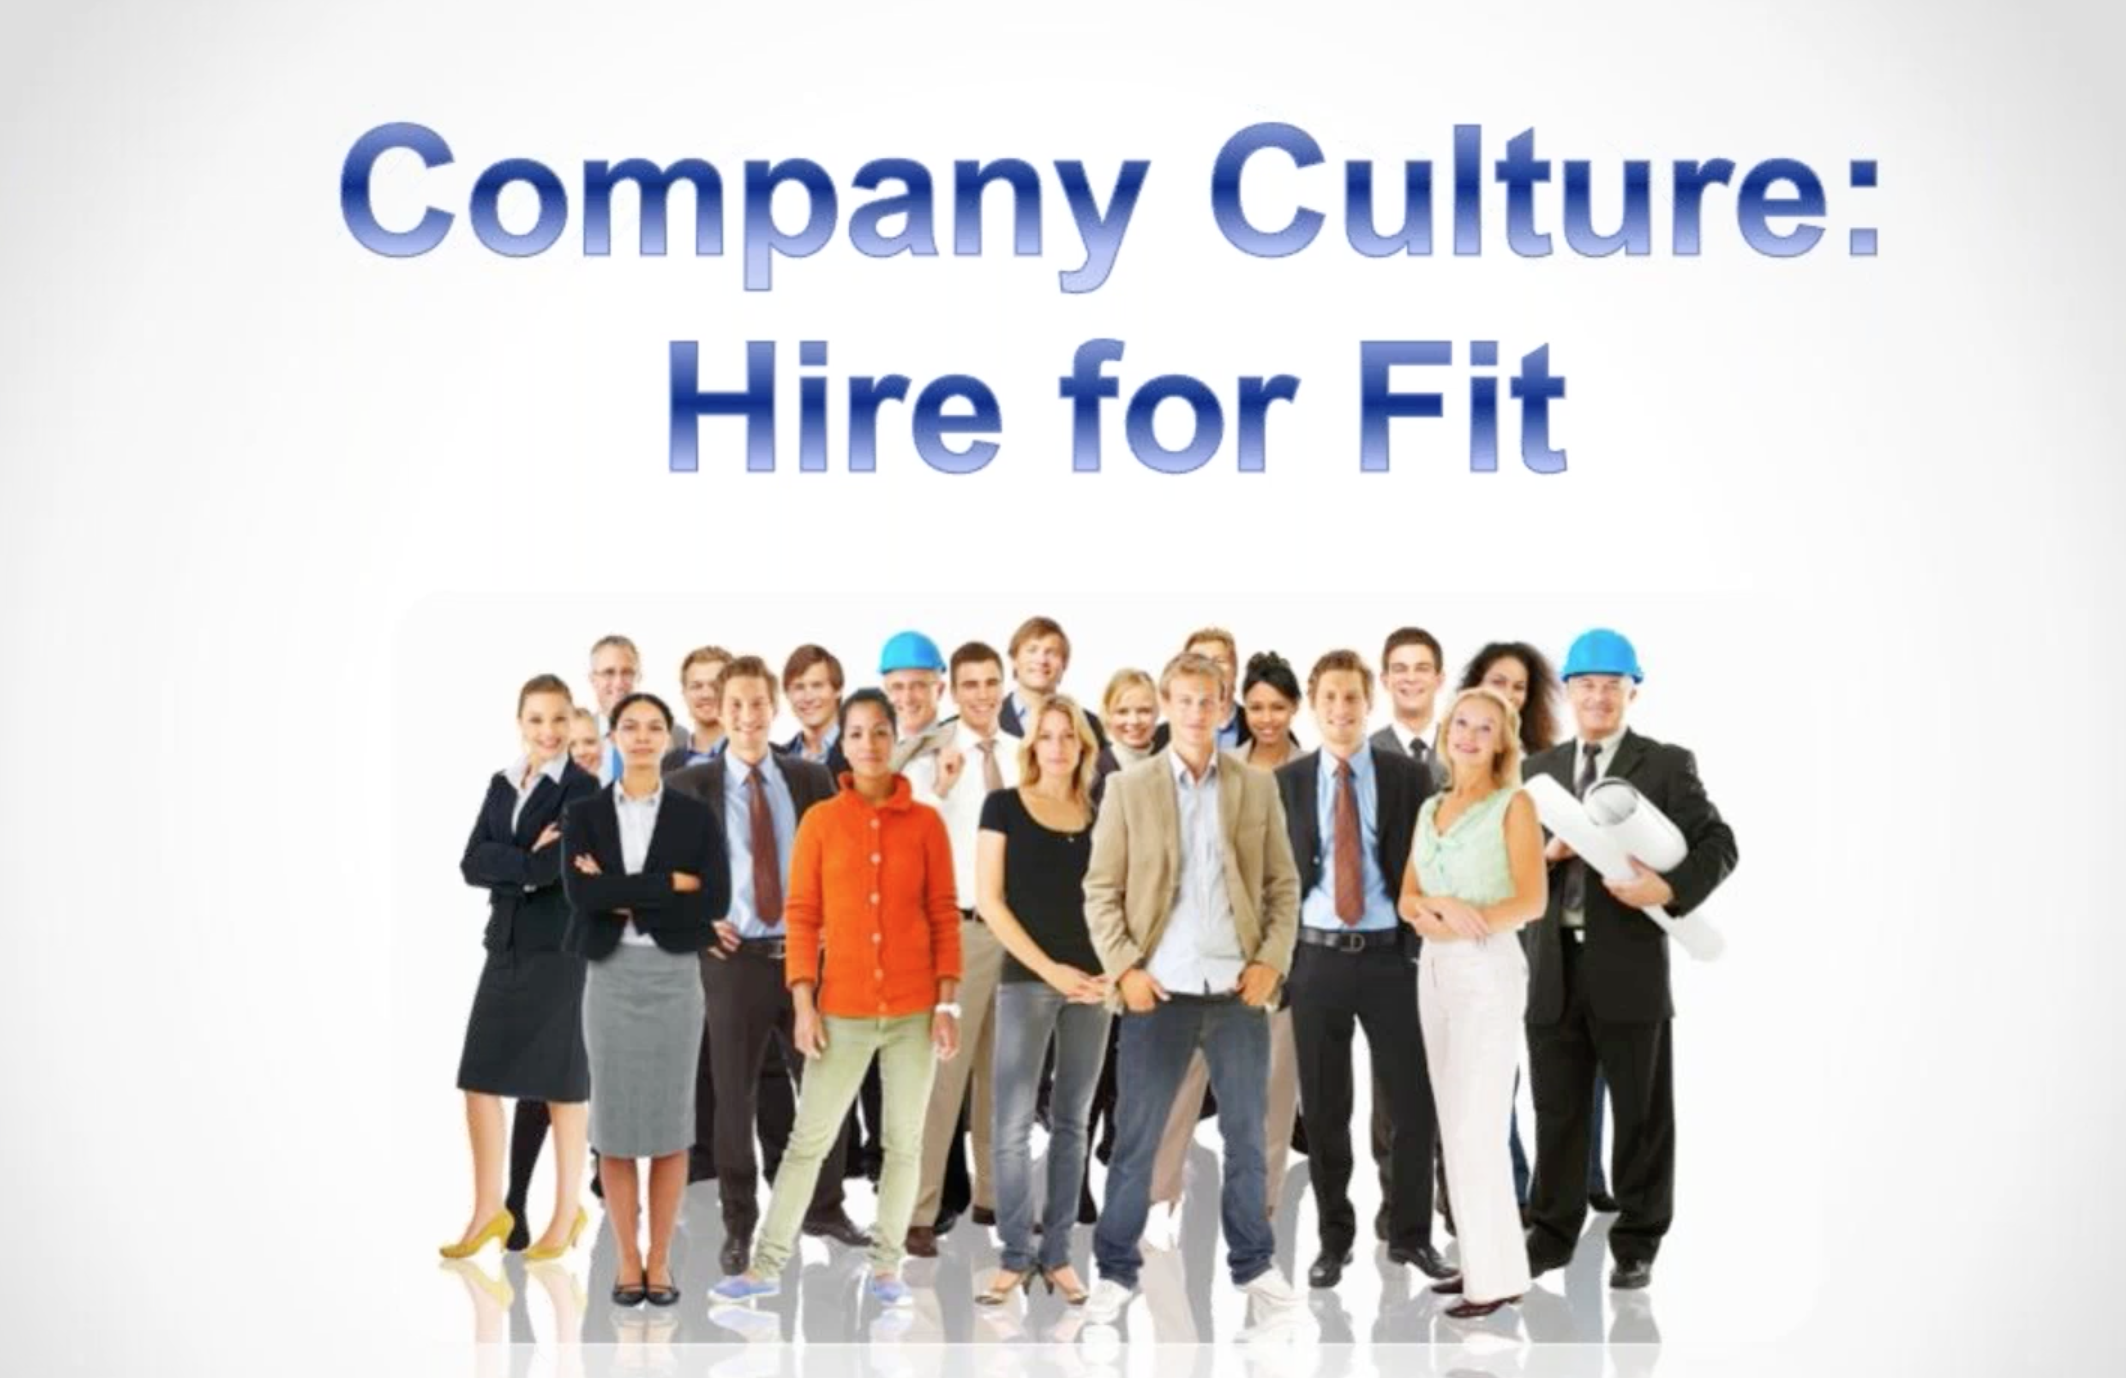 Company Culture: Hire for Fit